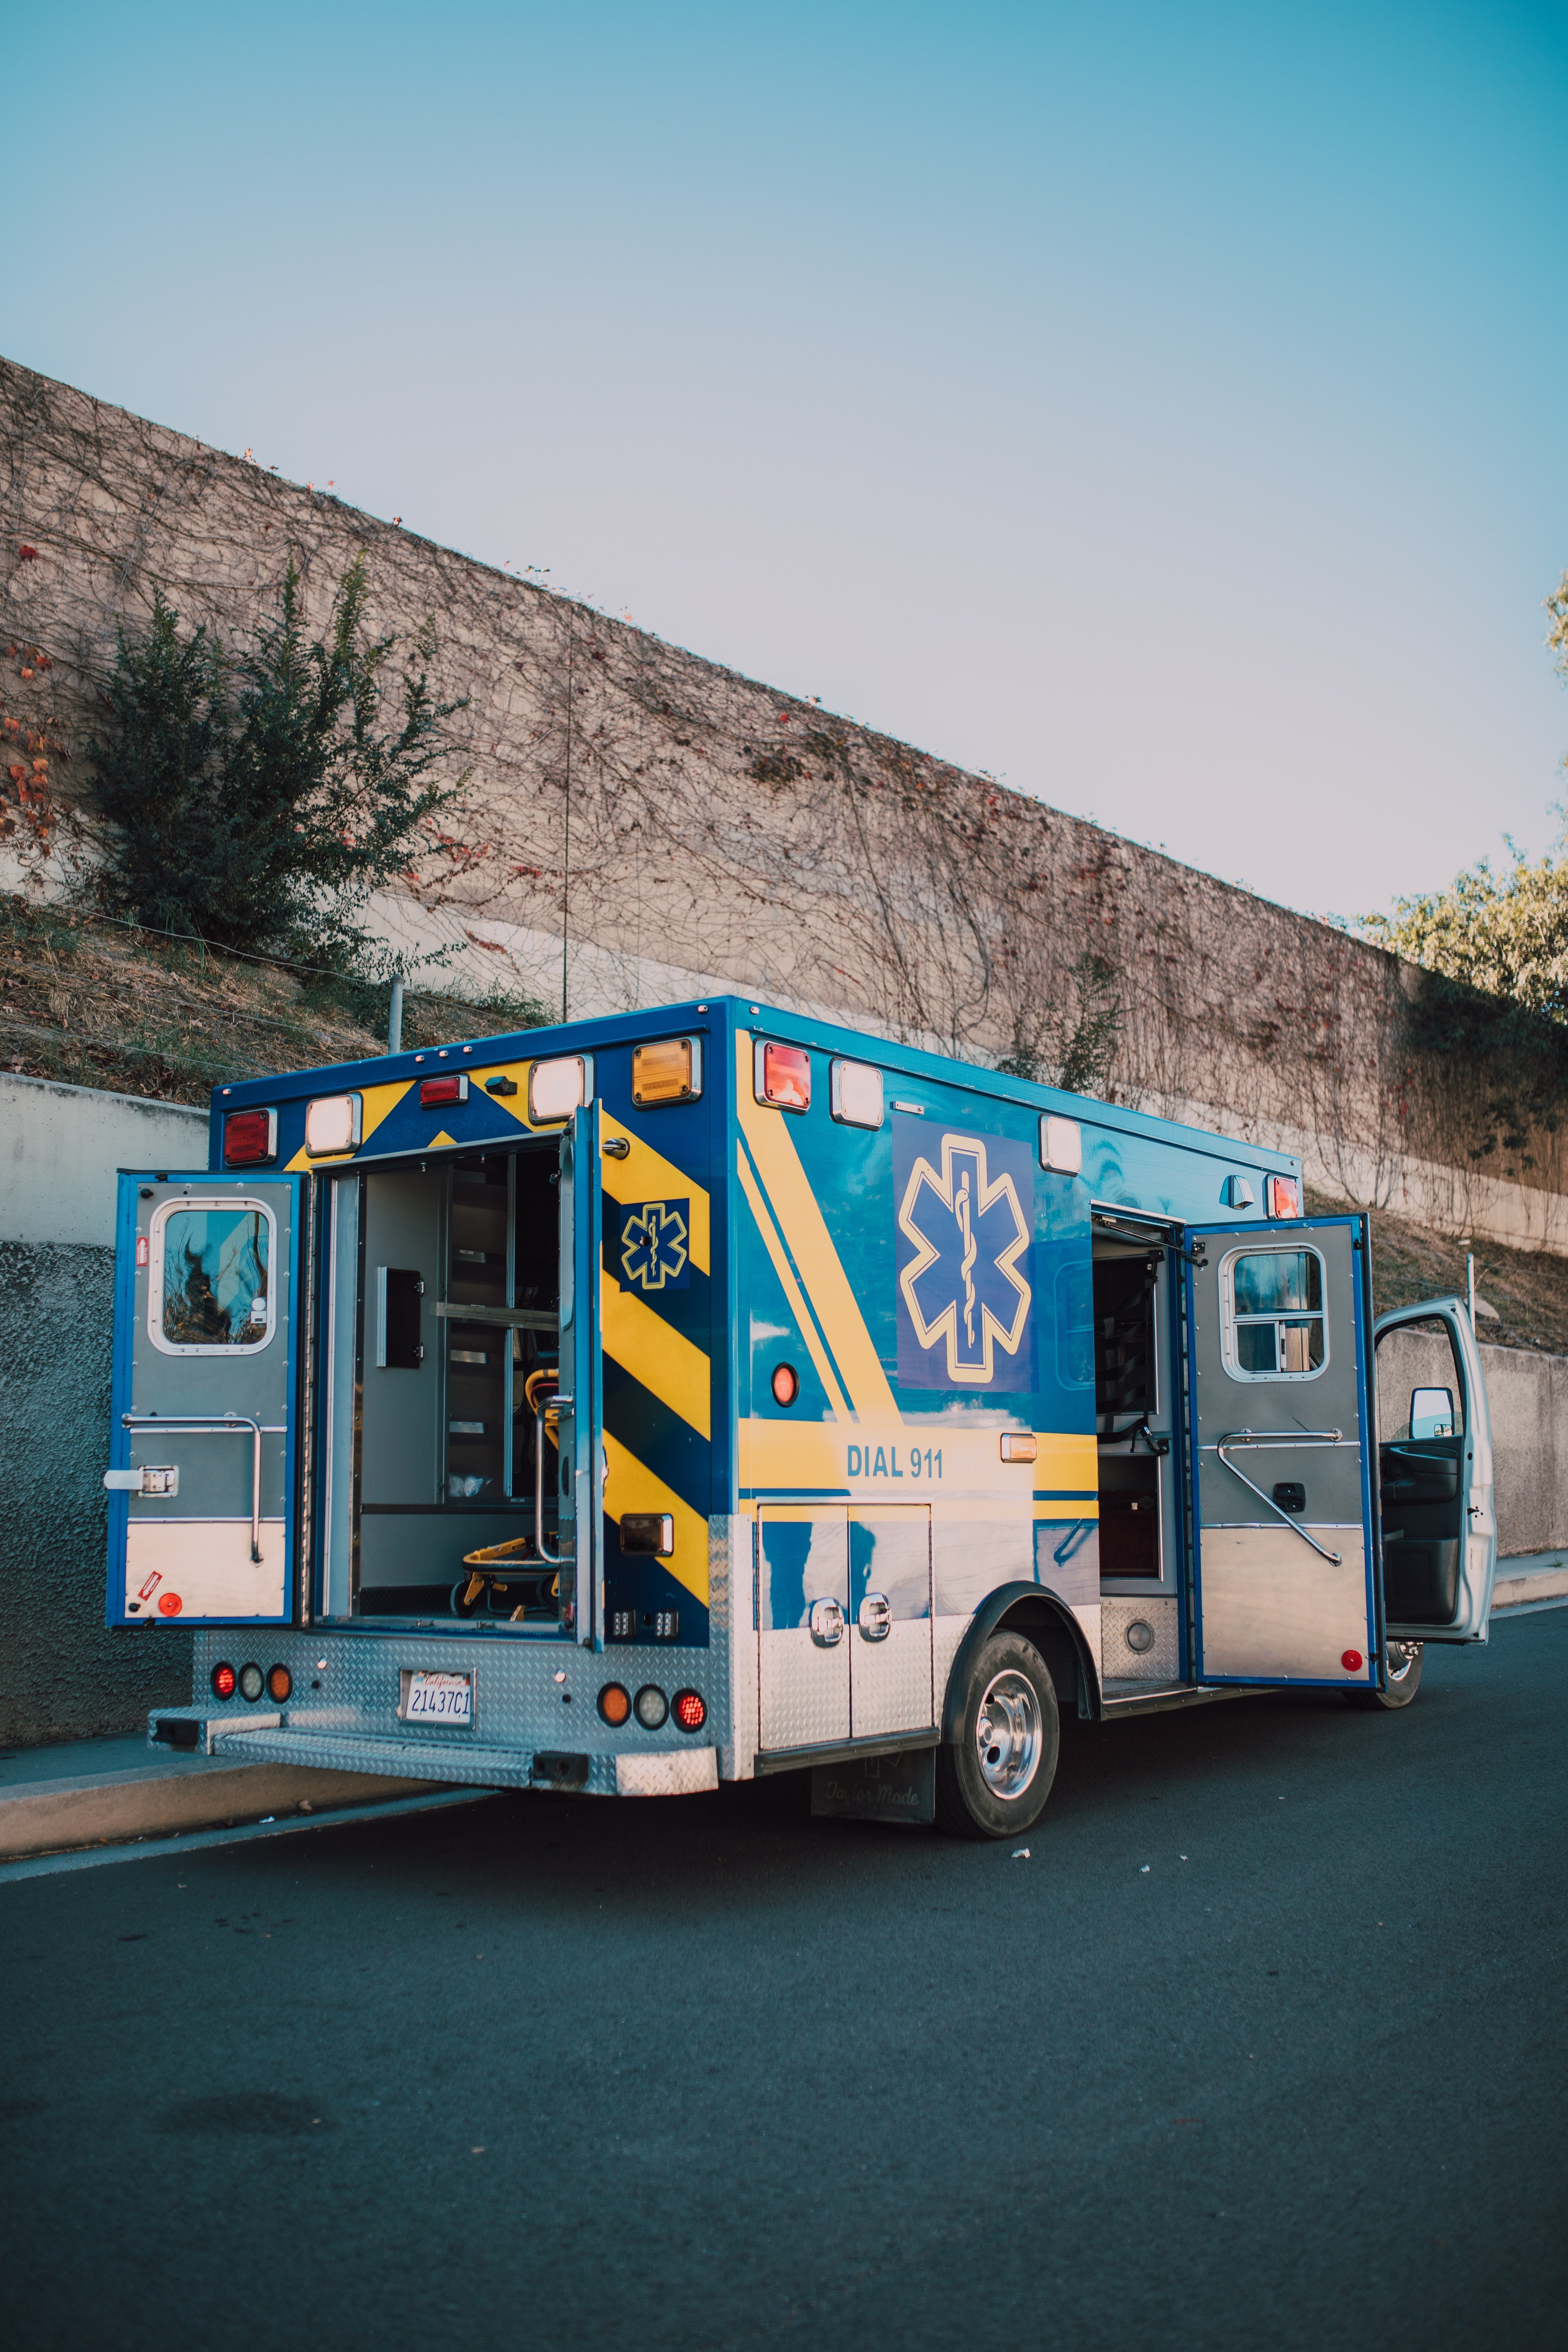 An ambulance with its' back doors open| Source: Pexels/ RODNAE Productions